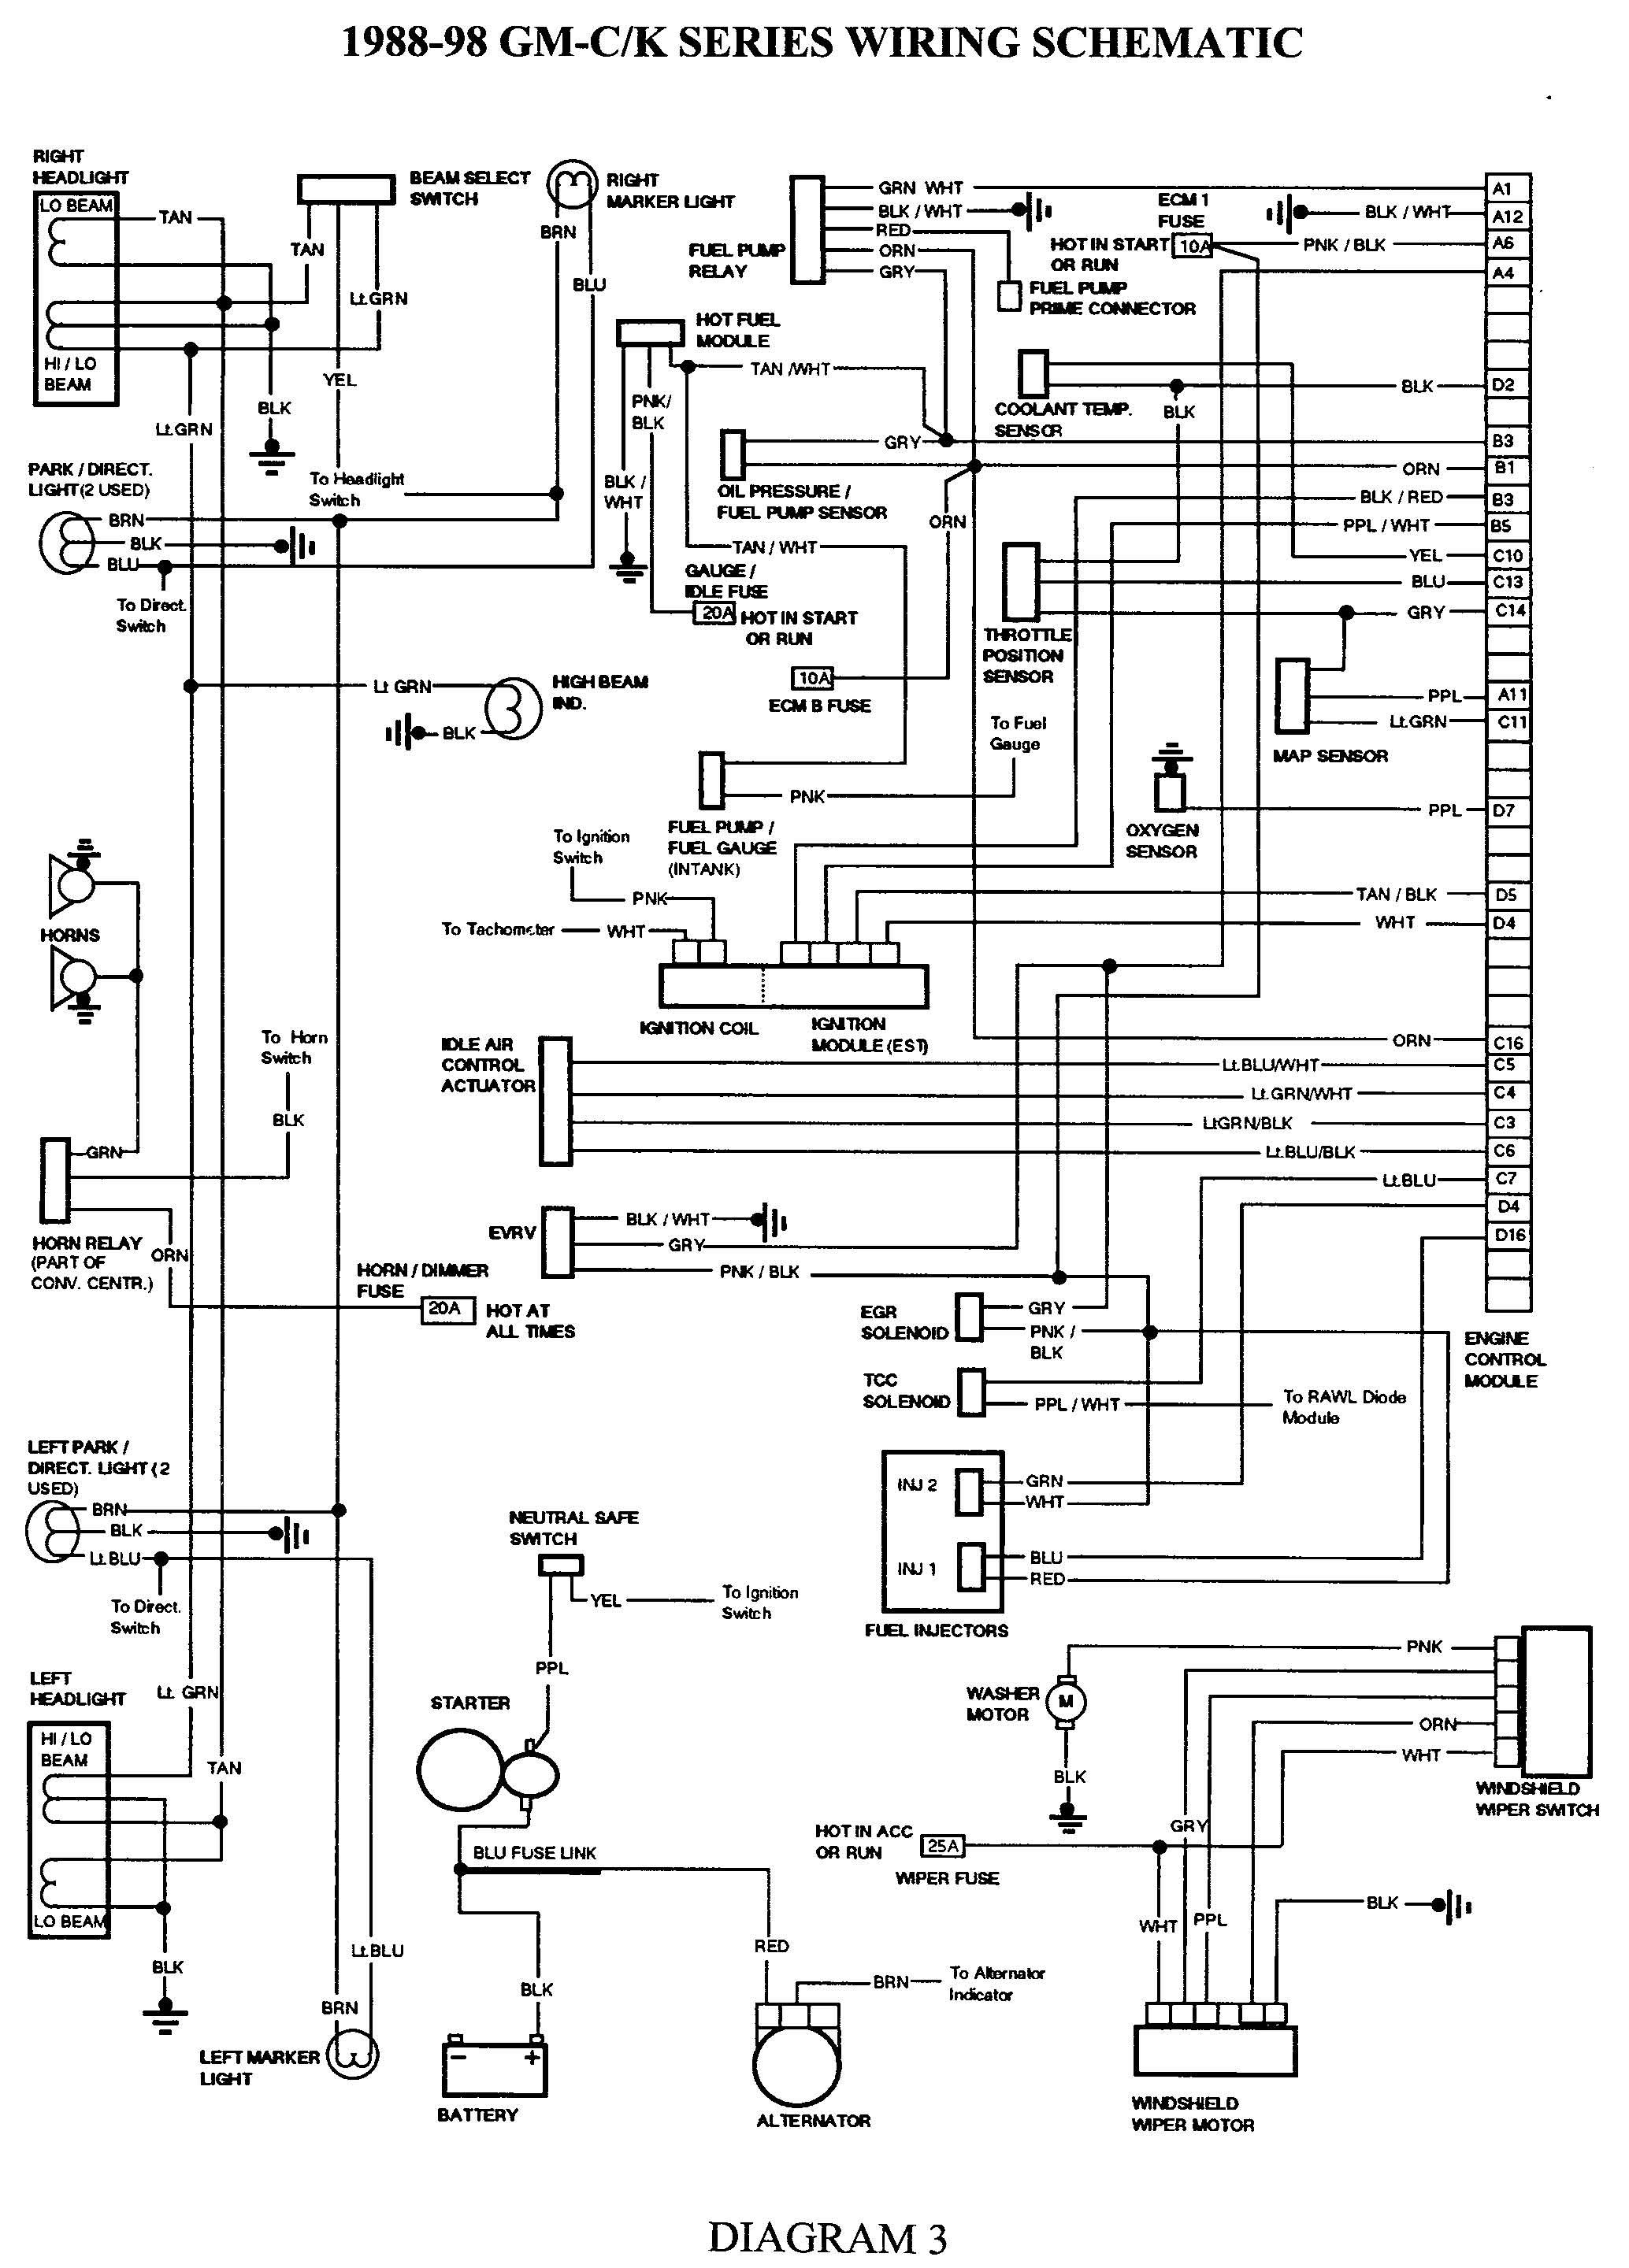 b2f2e5dbdc07dada83ef514f6d4ce3d4 gmc truck wiring diagrams on gm wiring harness diagram 88 98 kc gm wiring harness at gsmx.co